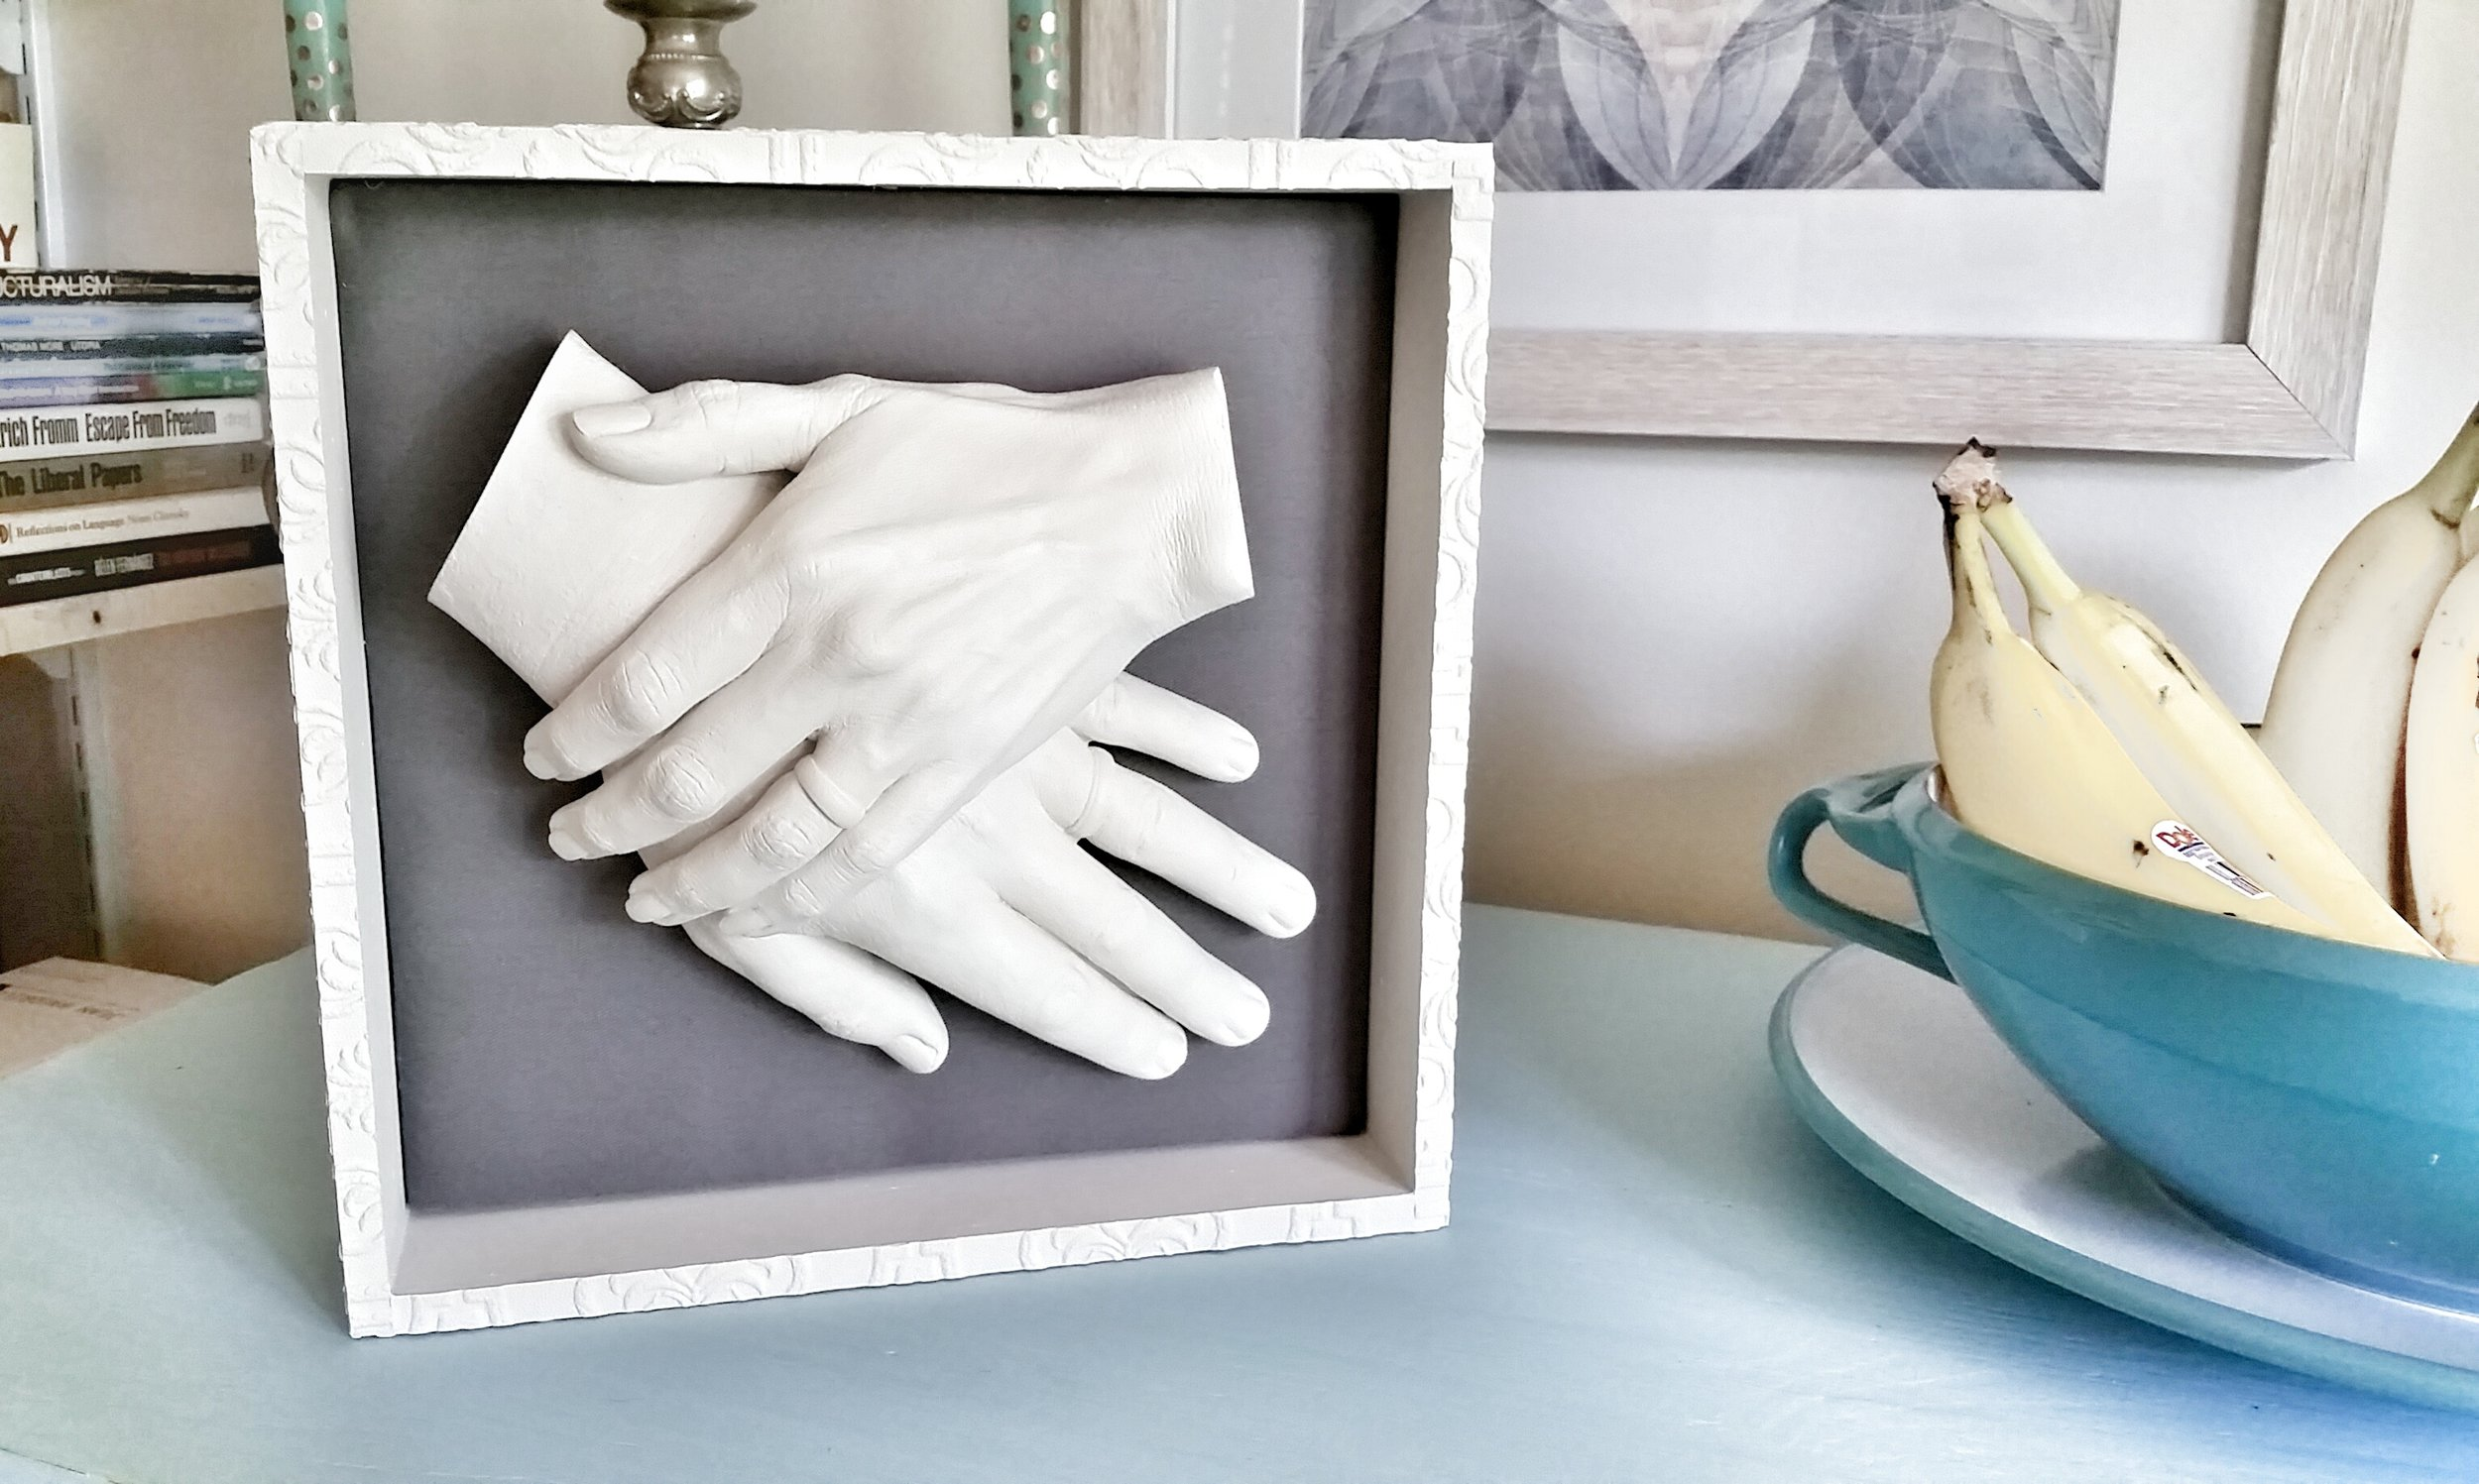 $60 -- Shadow Box for Two Hands, Hangs on Wall (White or Black)